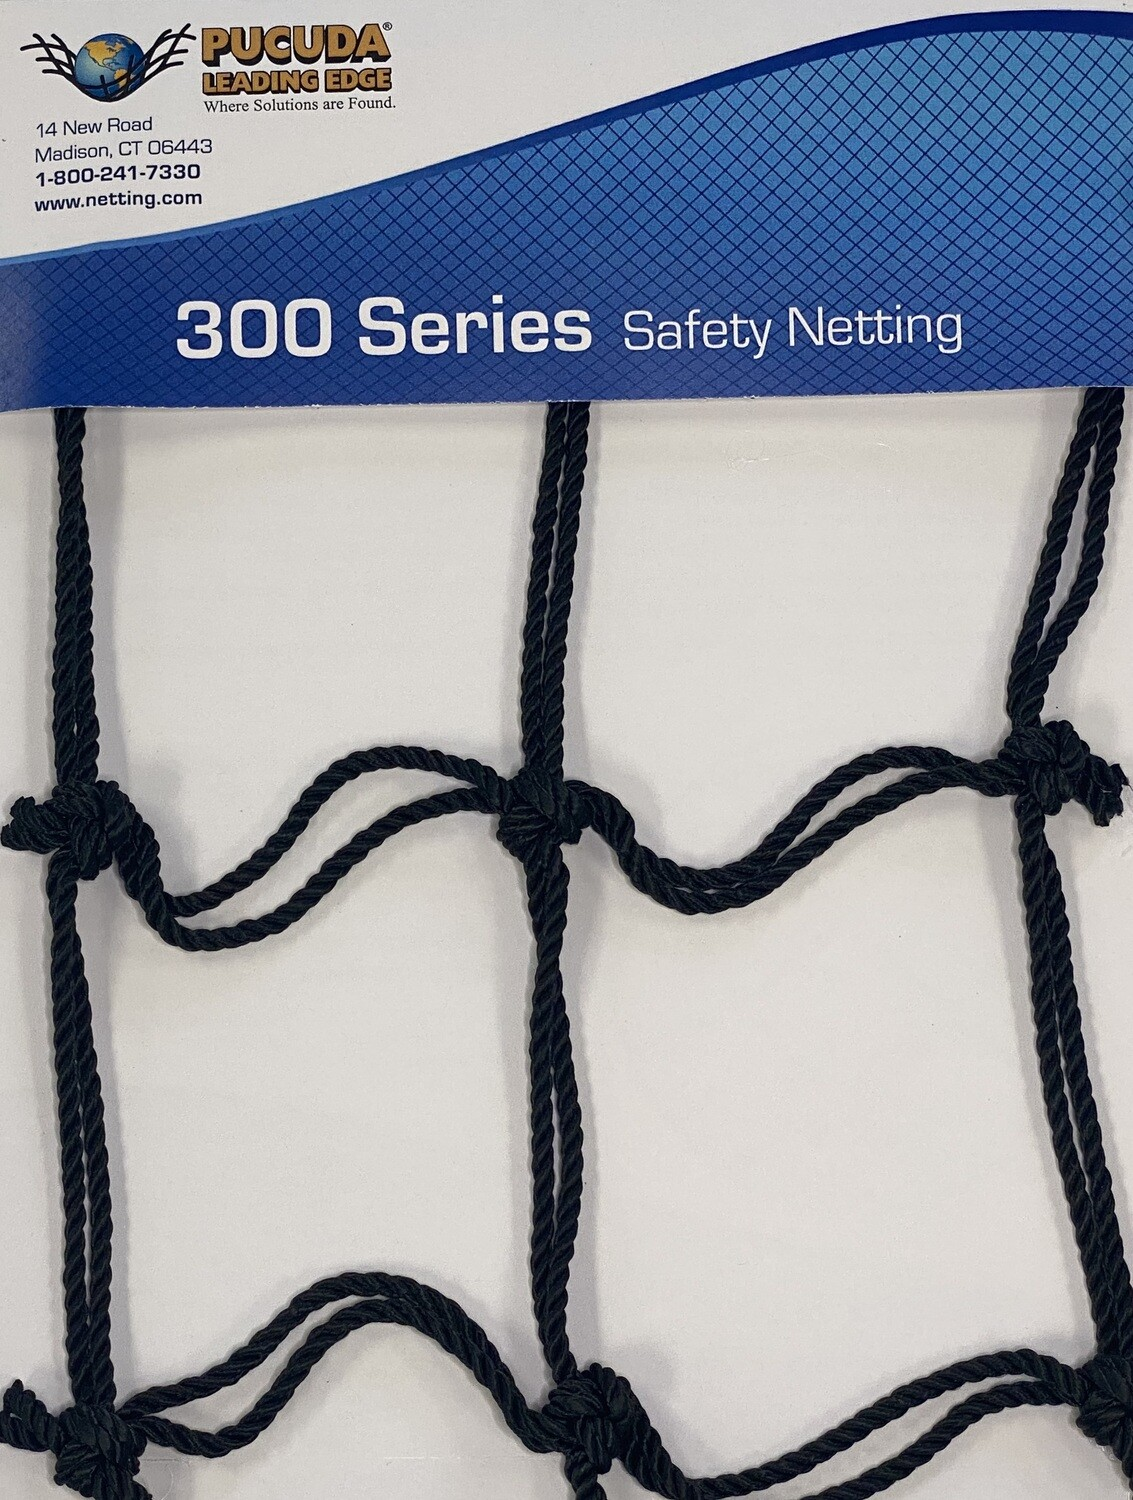 300 Series Safety Netting